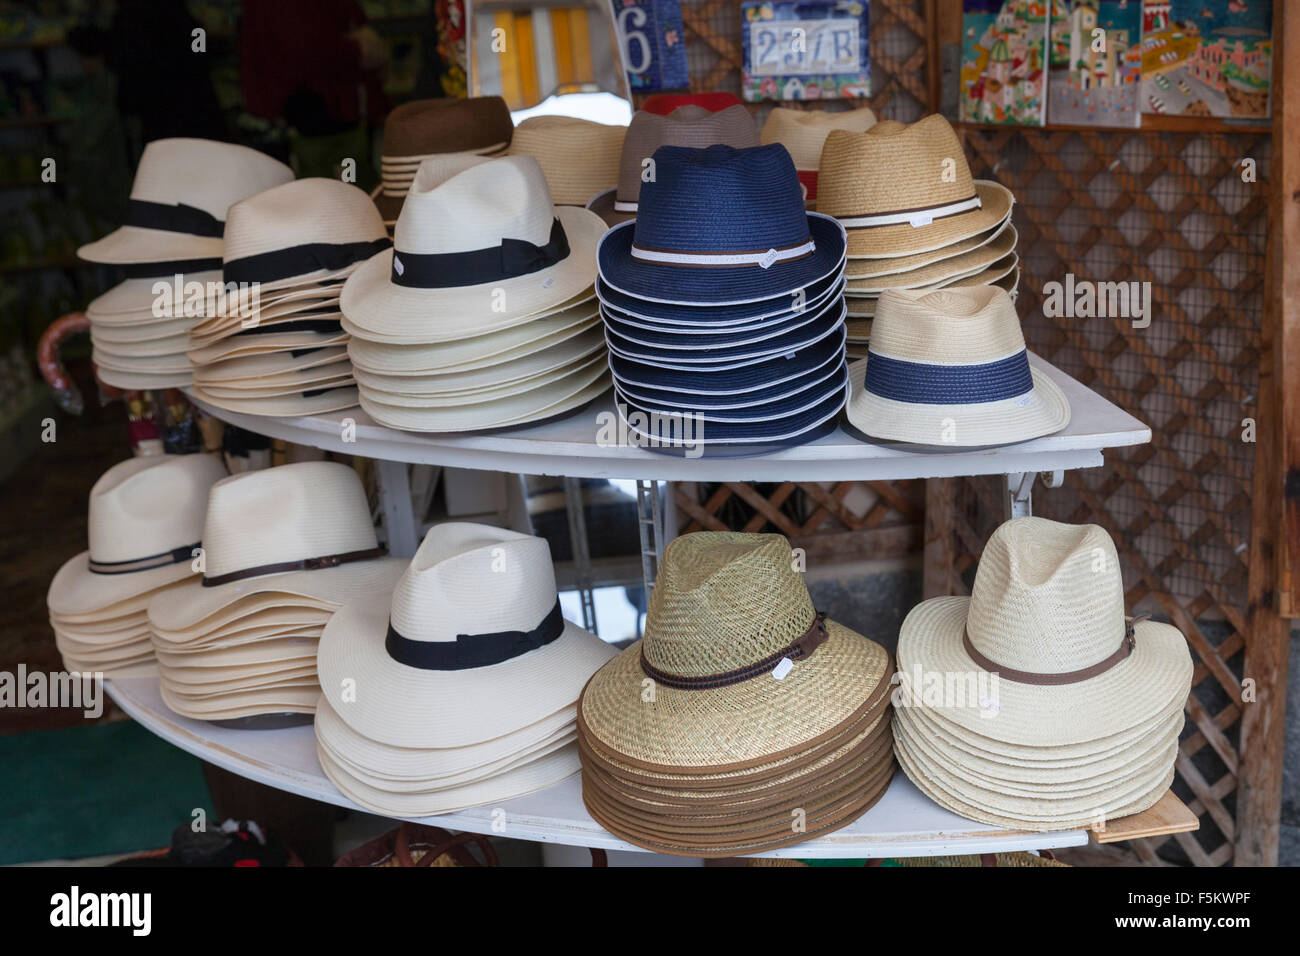 5d377758d30 Panama hats and other summer straw hats on display in a shop in Positano on  the